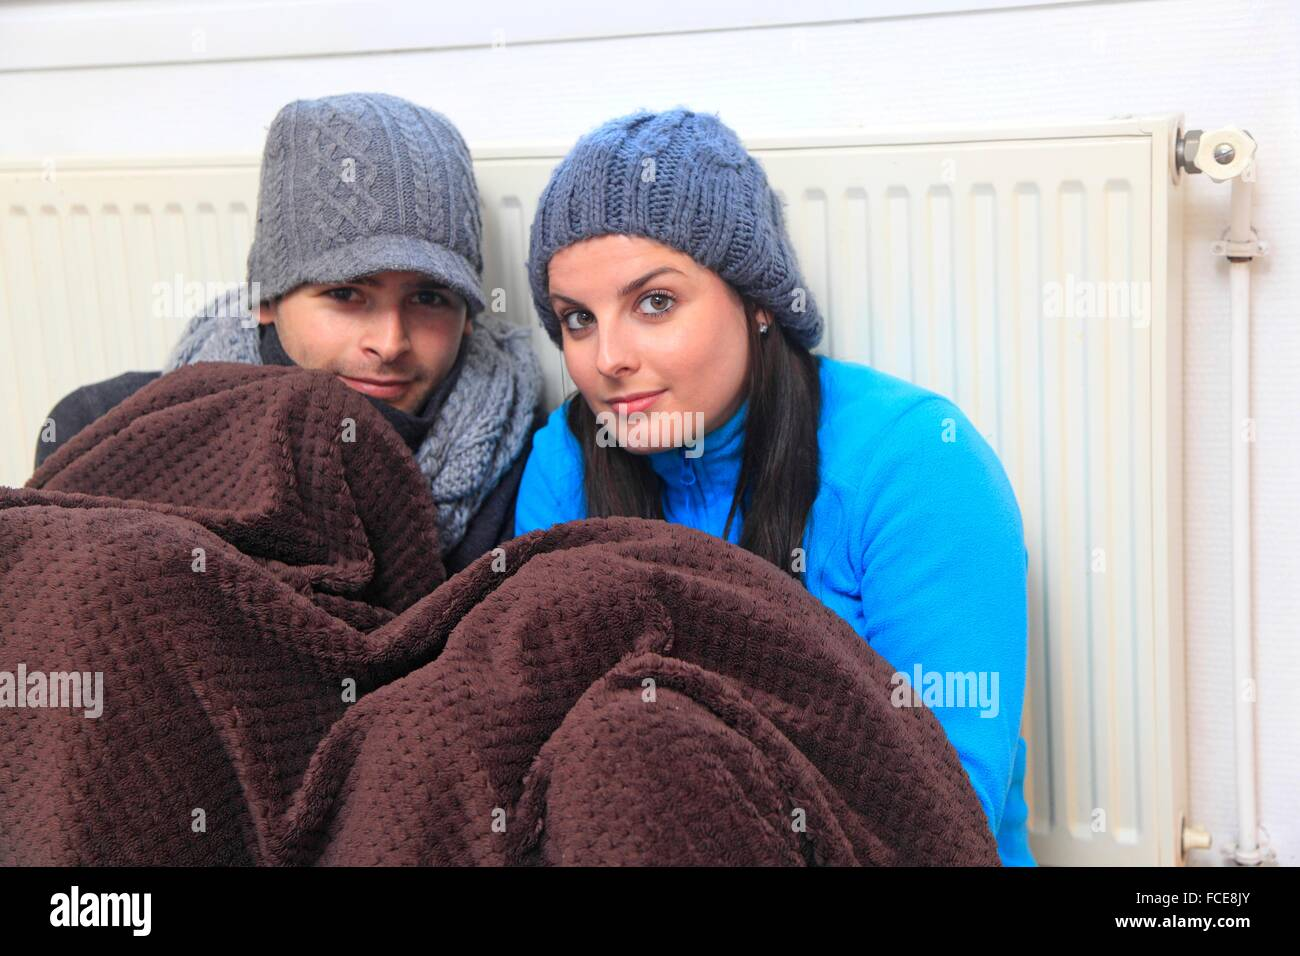 France, young couple dressed warmly - Stock Image